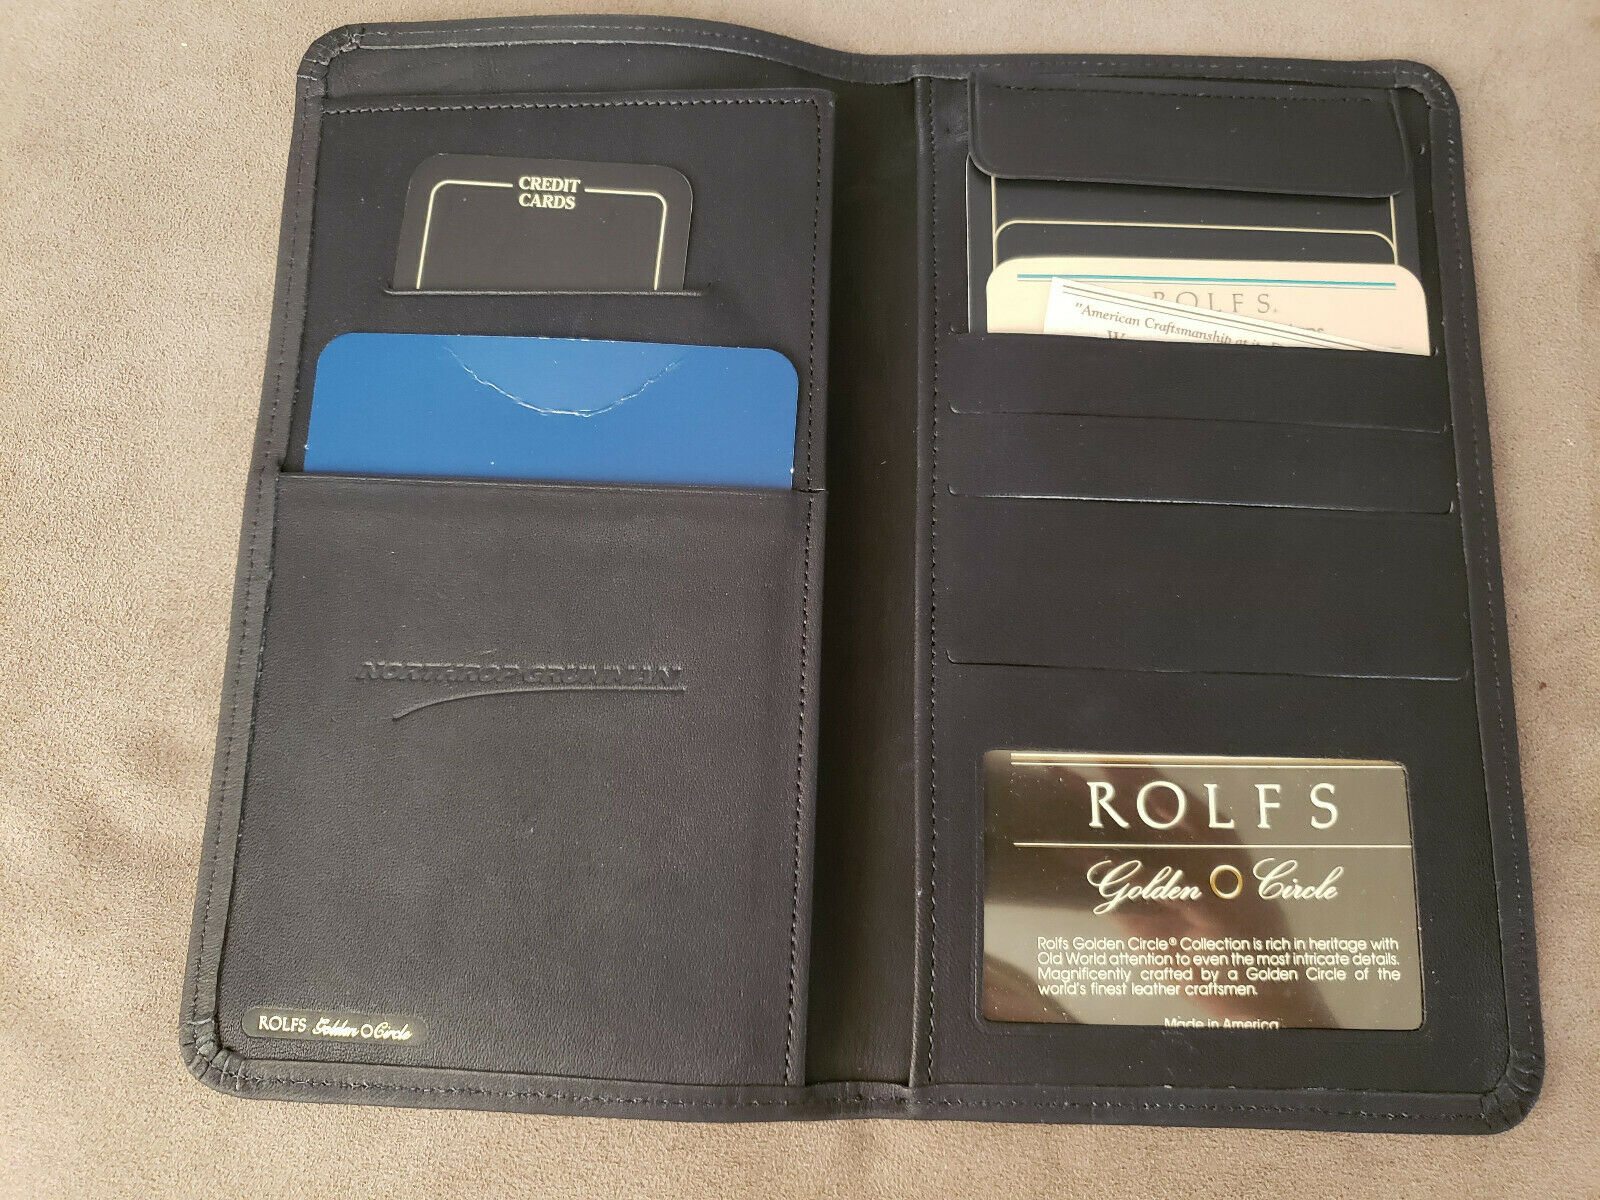 Black Rolfs Golden Circle Genuine Leather Travel Wallet. Brand new in box.